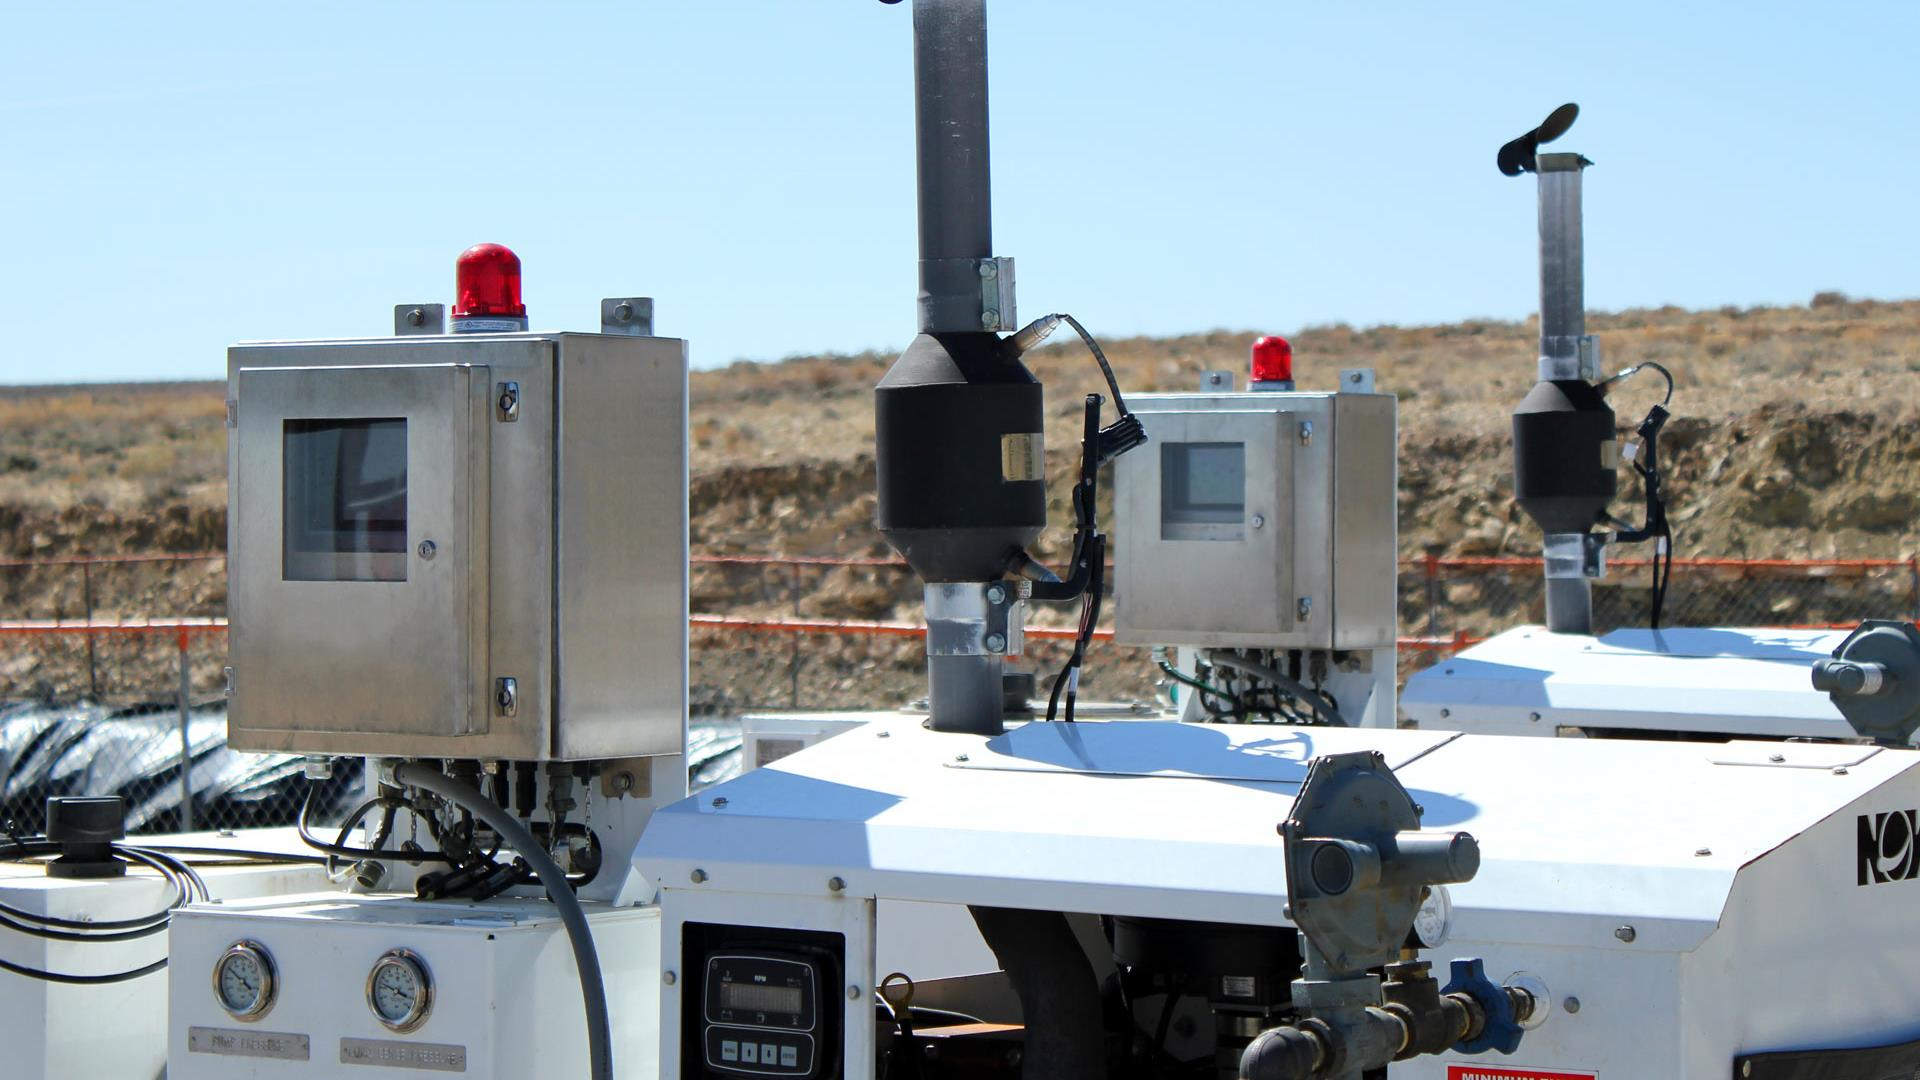 A Hydraulic Pump Controller in action